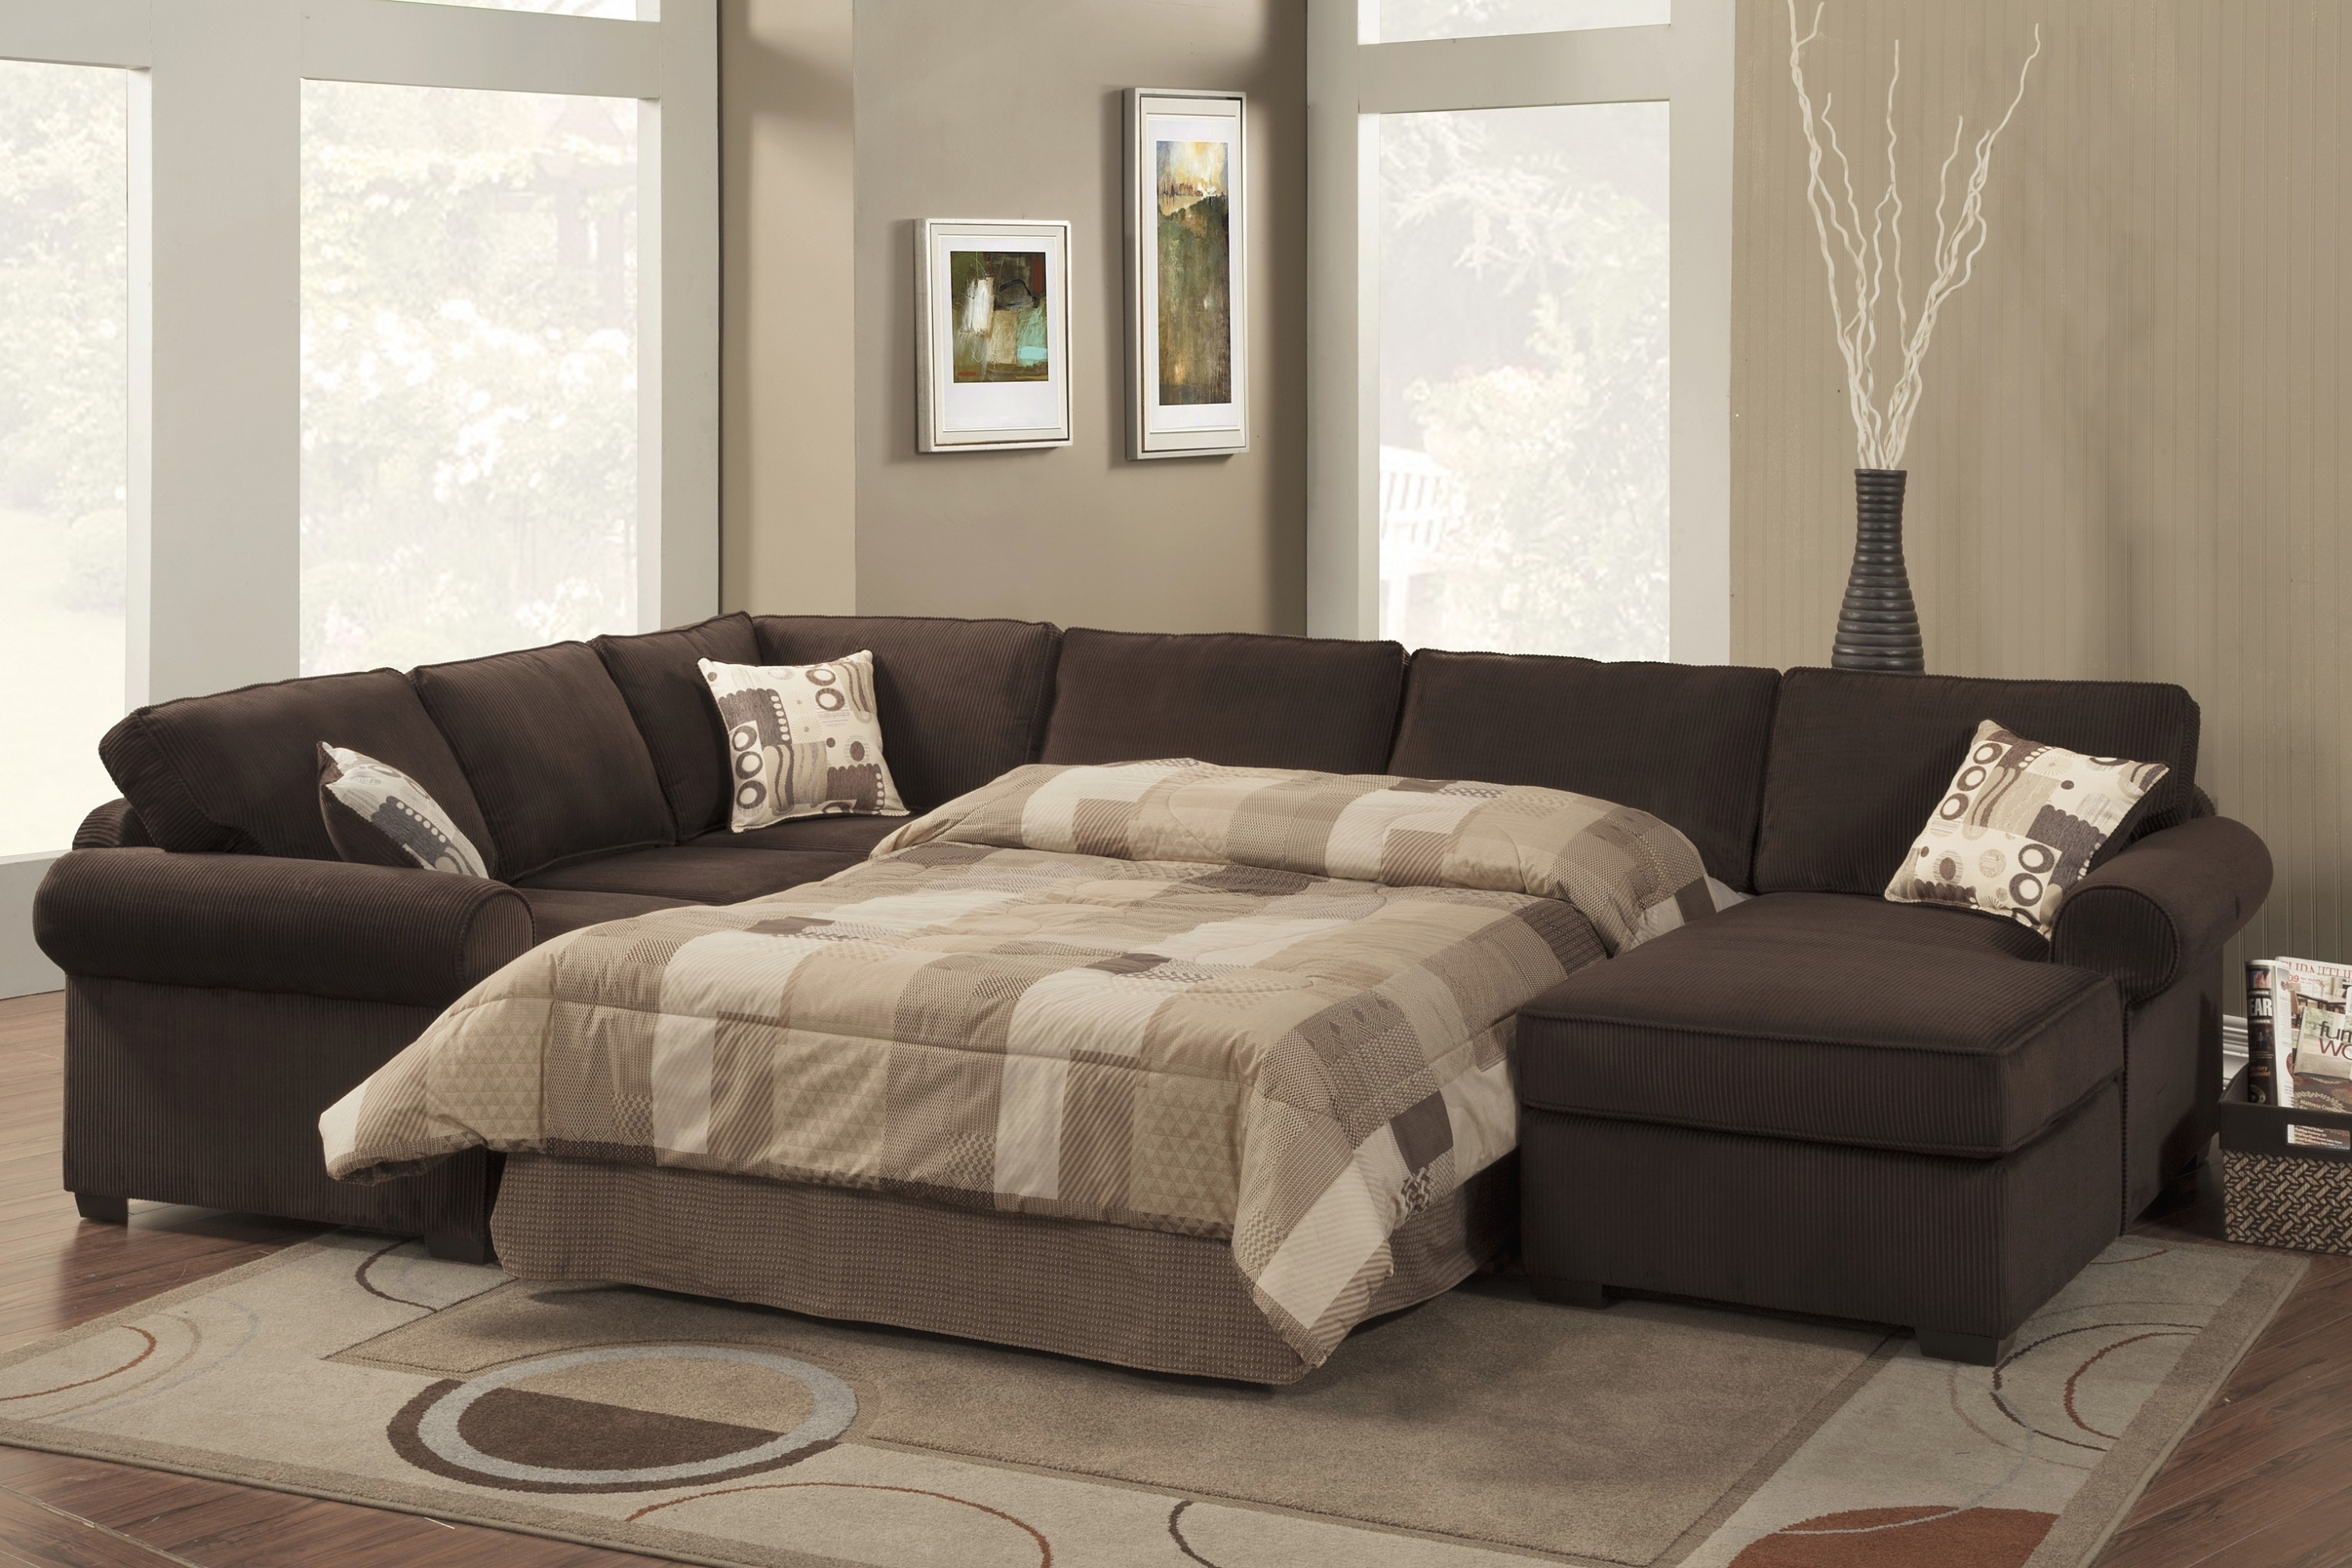 Living Room: Incredible Leather Sectional Sleeper Sofa With Chaise Inside Aspen 2 Piece Sleeper Sectionals With Laf Chaise (Image 13 of 25)